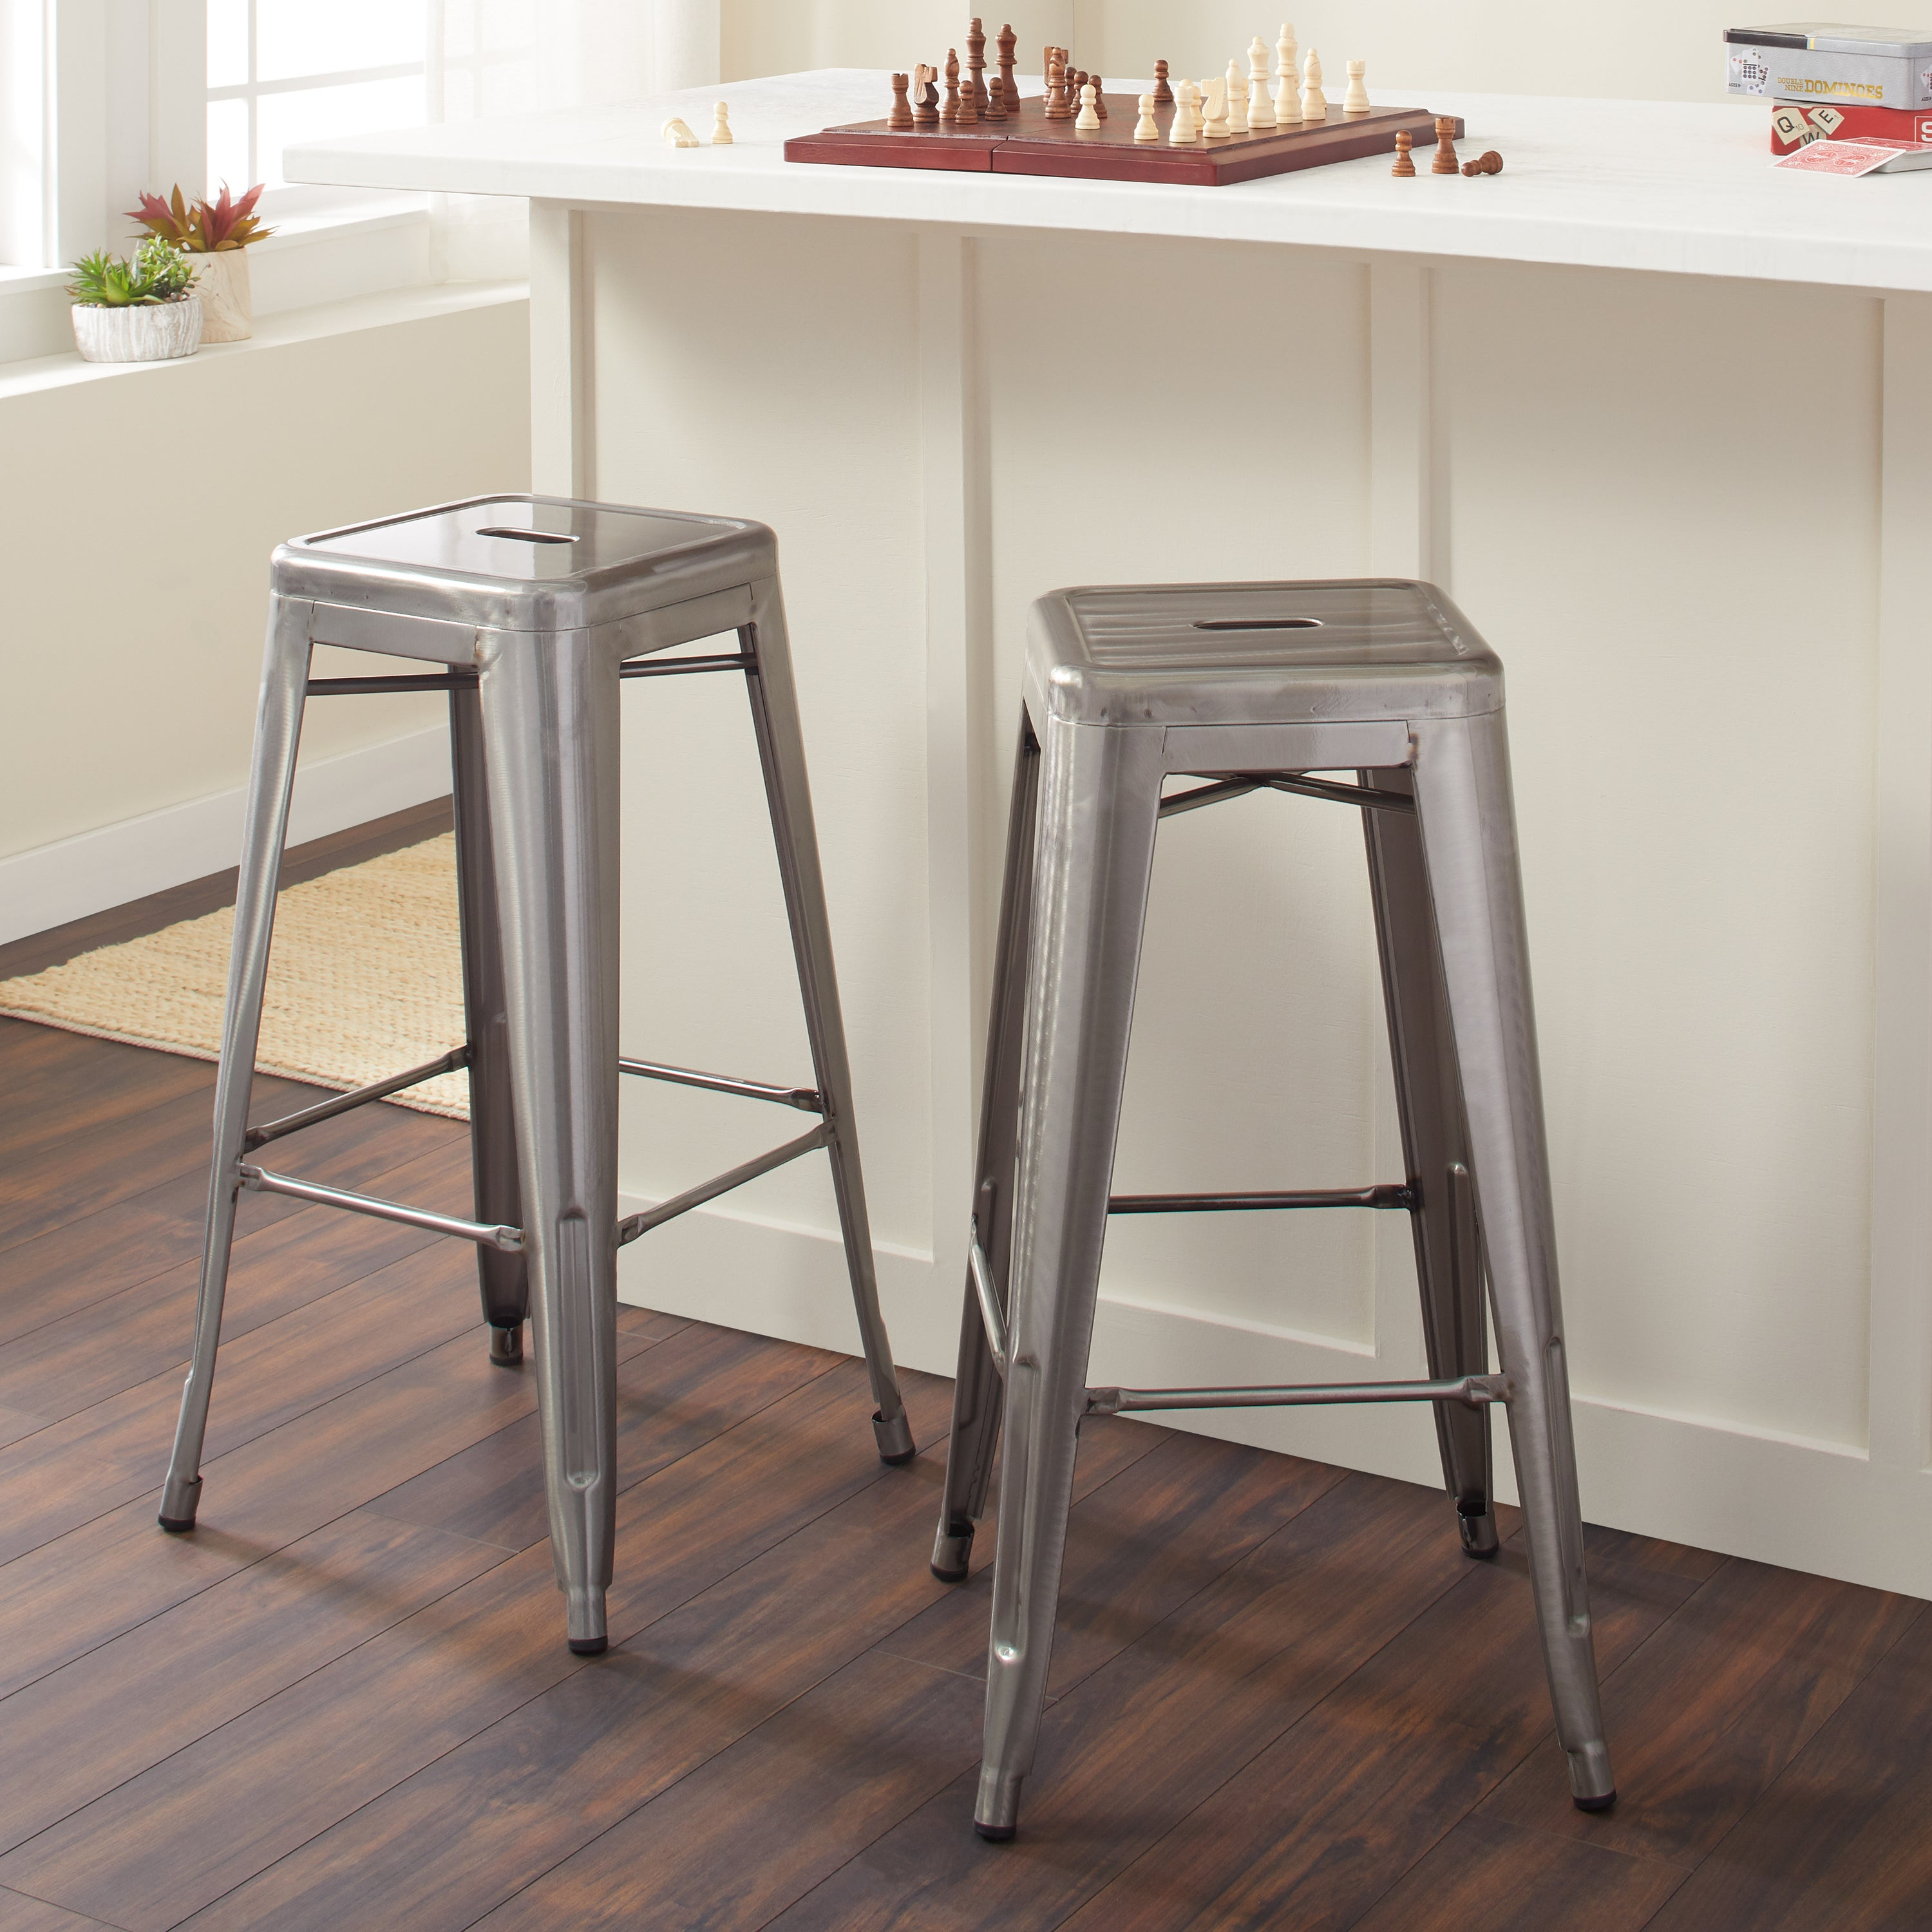 shop tabouret 30 inch vintage and gunmetal bar stools set of 2 free shipping today overstockcom 6839587 - Tabouret Metal Vintage